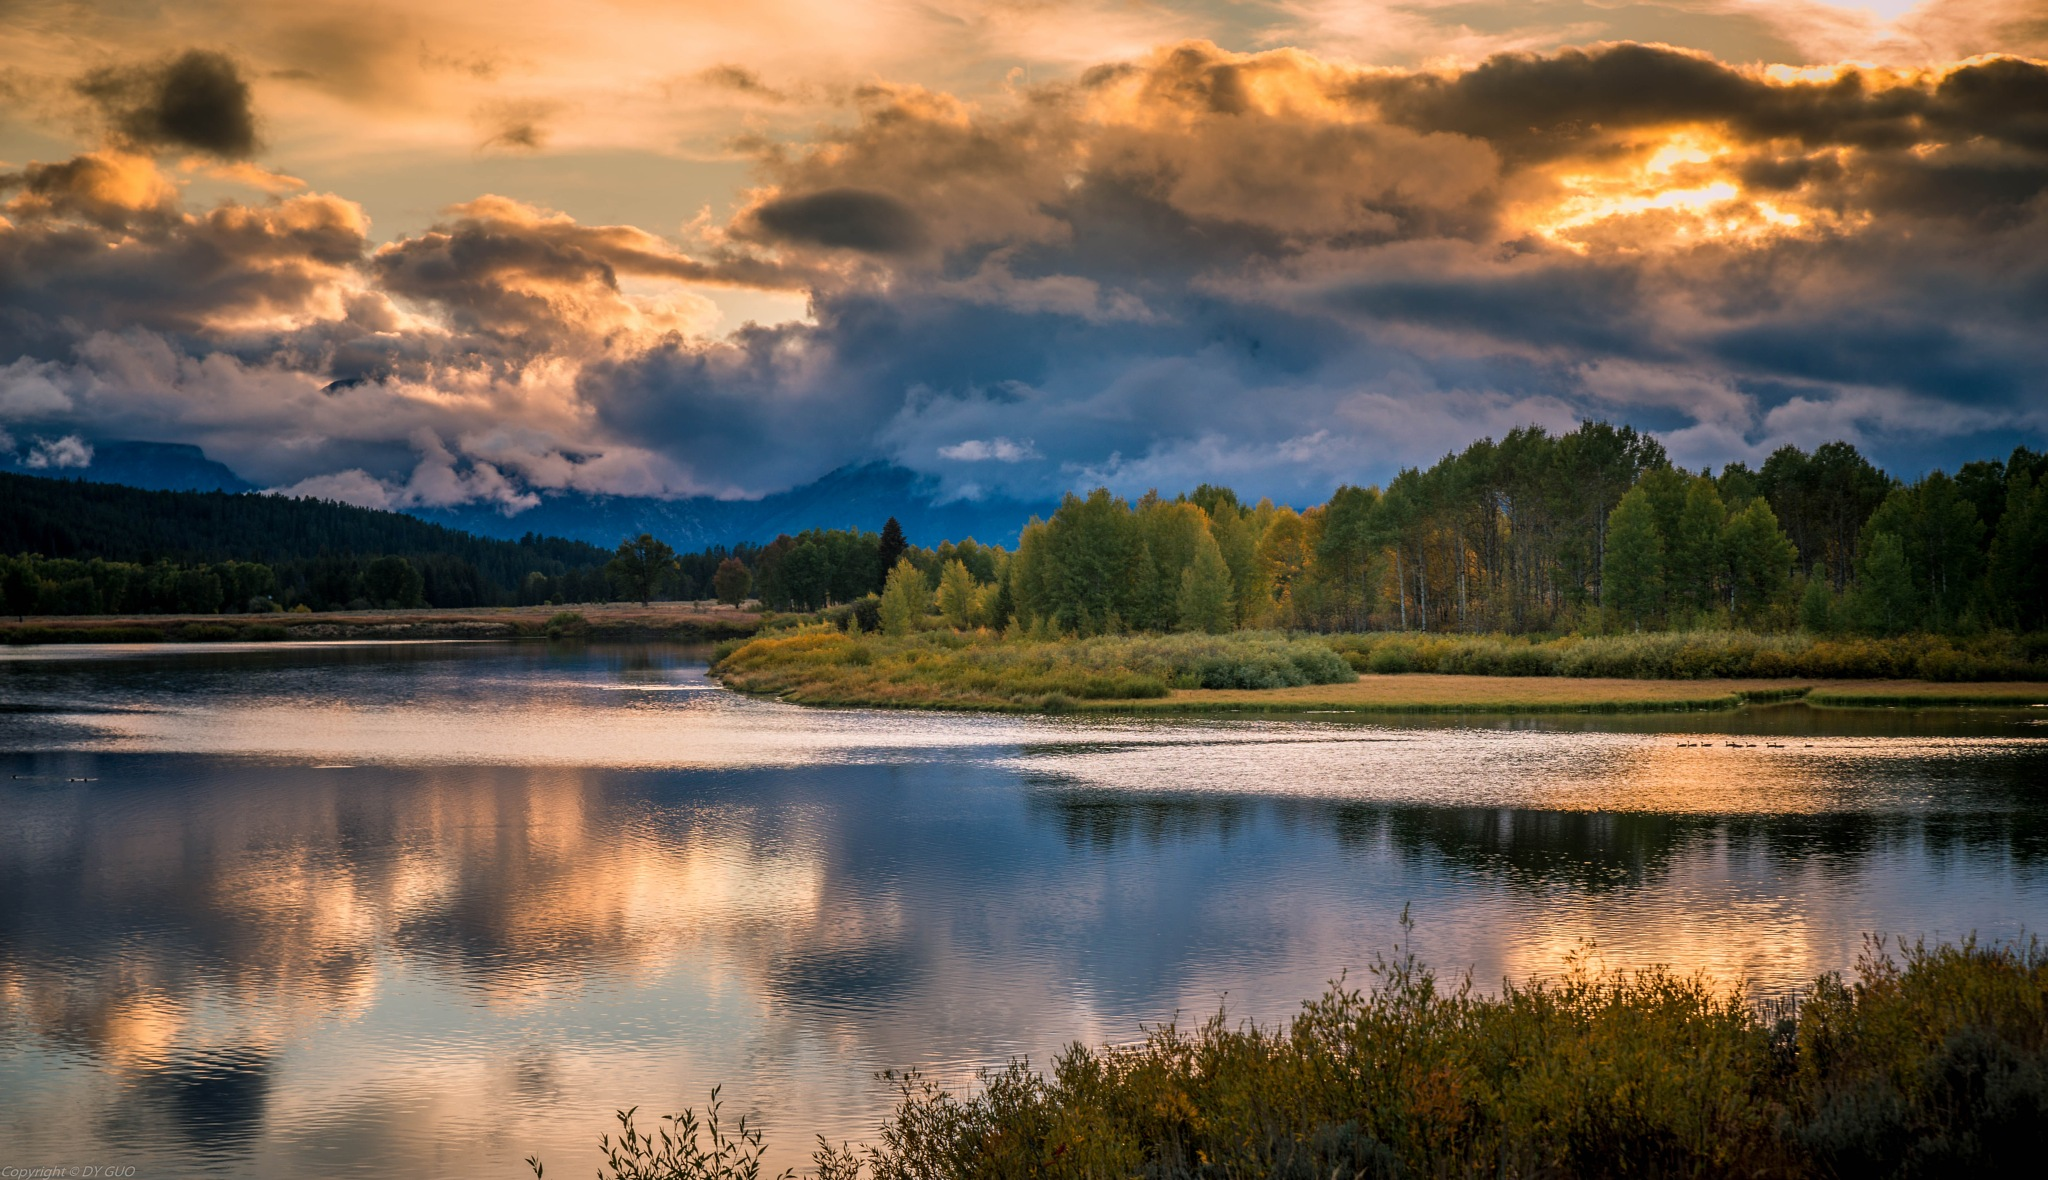 Oxbow Bend at sunset by David Guo